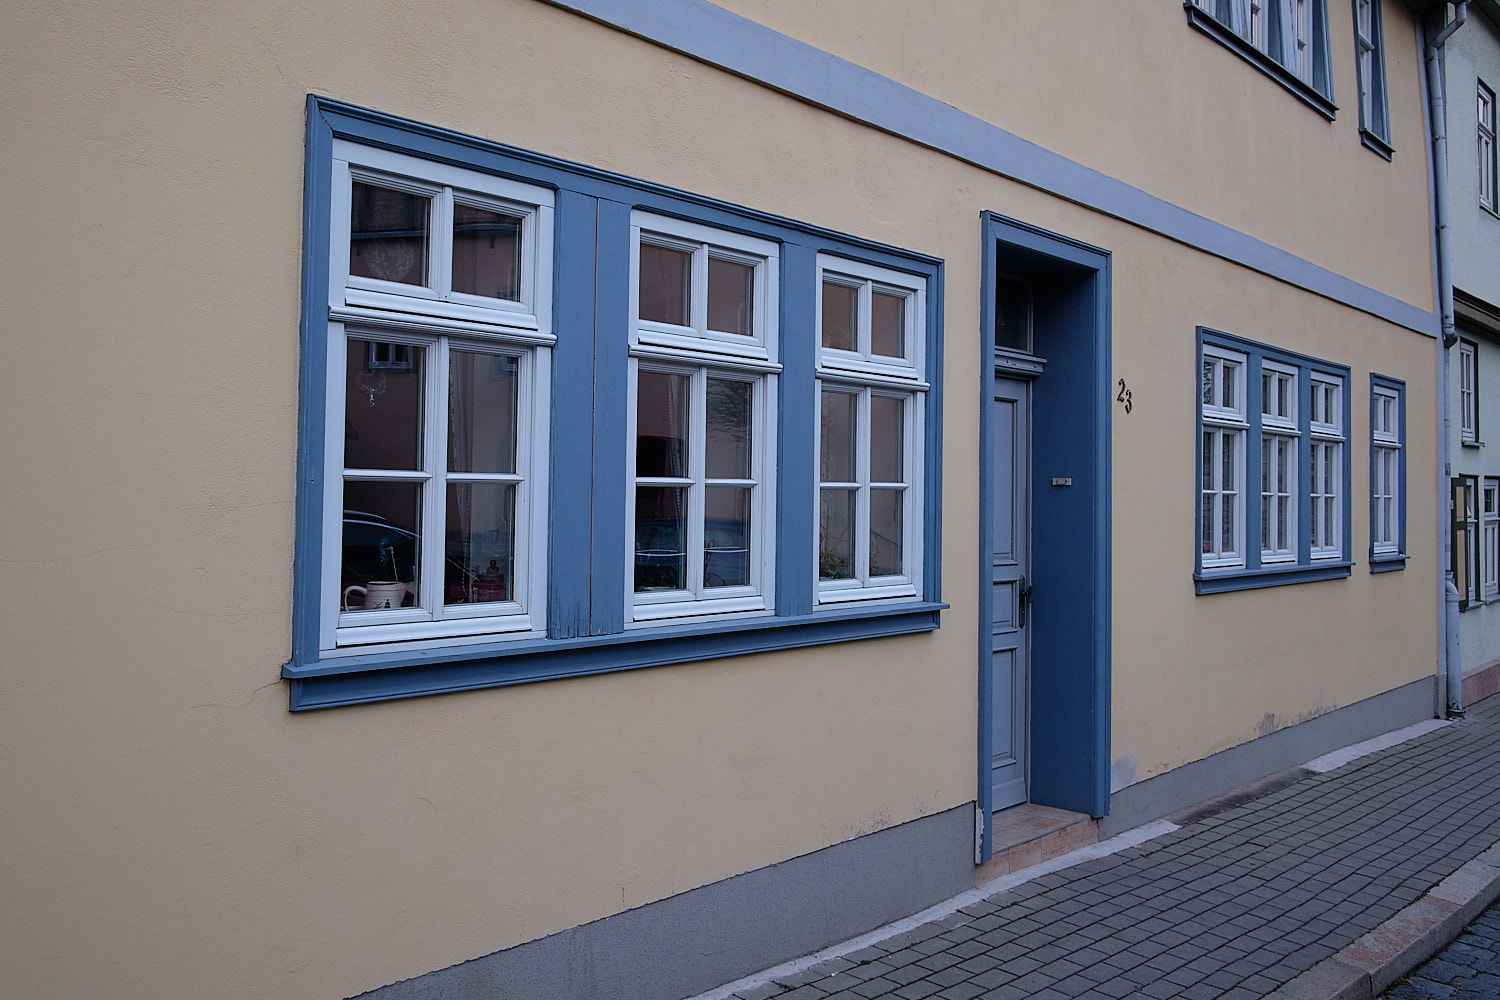 Renovated city center and building facades of Bad Langensalza, Germany